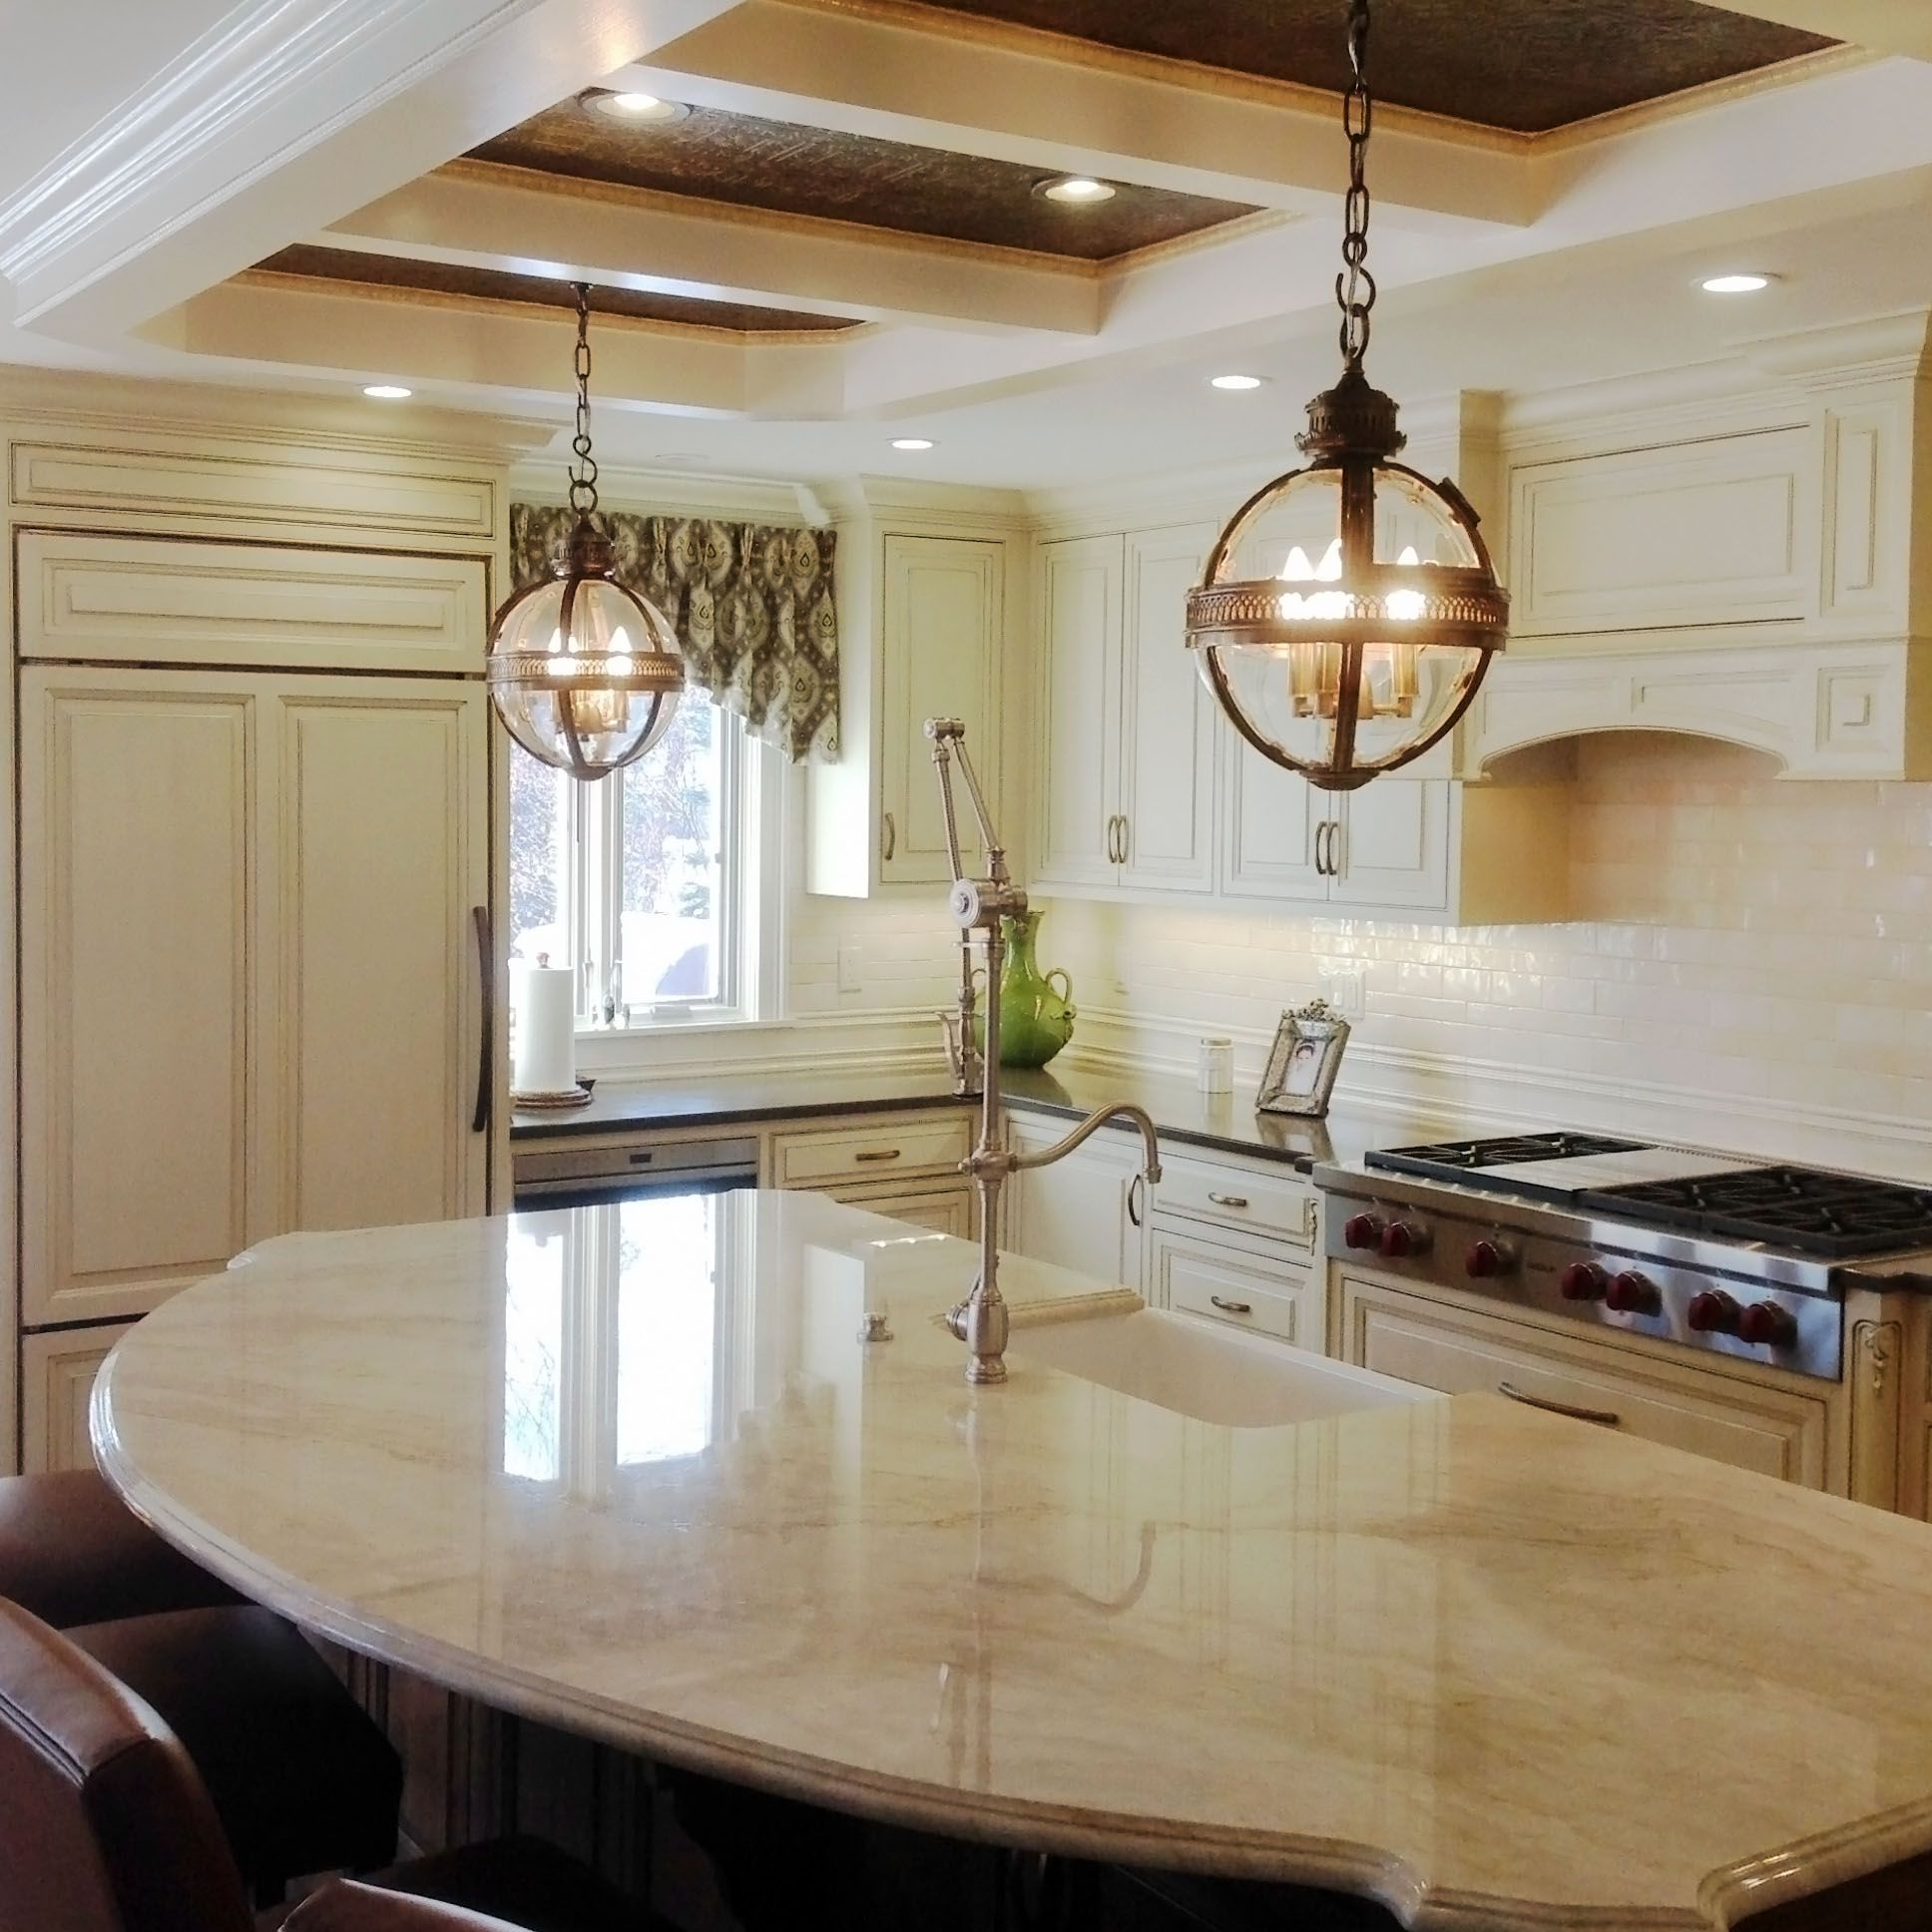 Kitchen island with quartz top - This Alluring Kitchen Showcases Our Taj Mahal Quartzite On The Island The Surrounding Kitchen Countertops Feature Lagos Azul Caesarstone Quartz For A